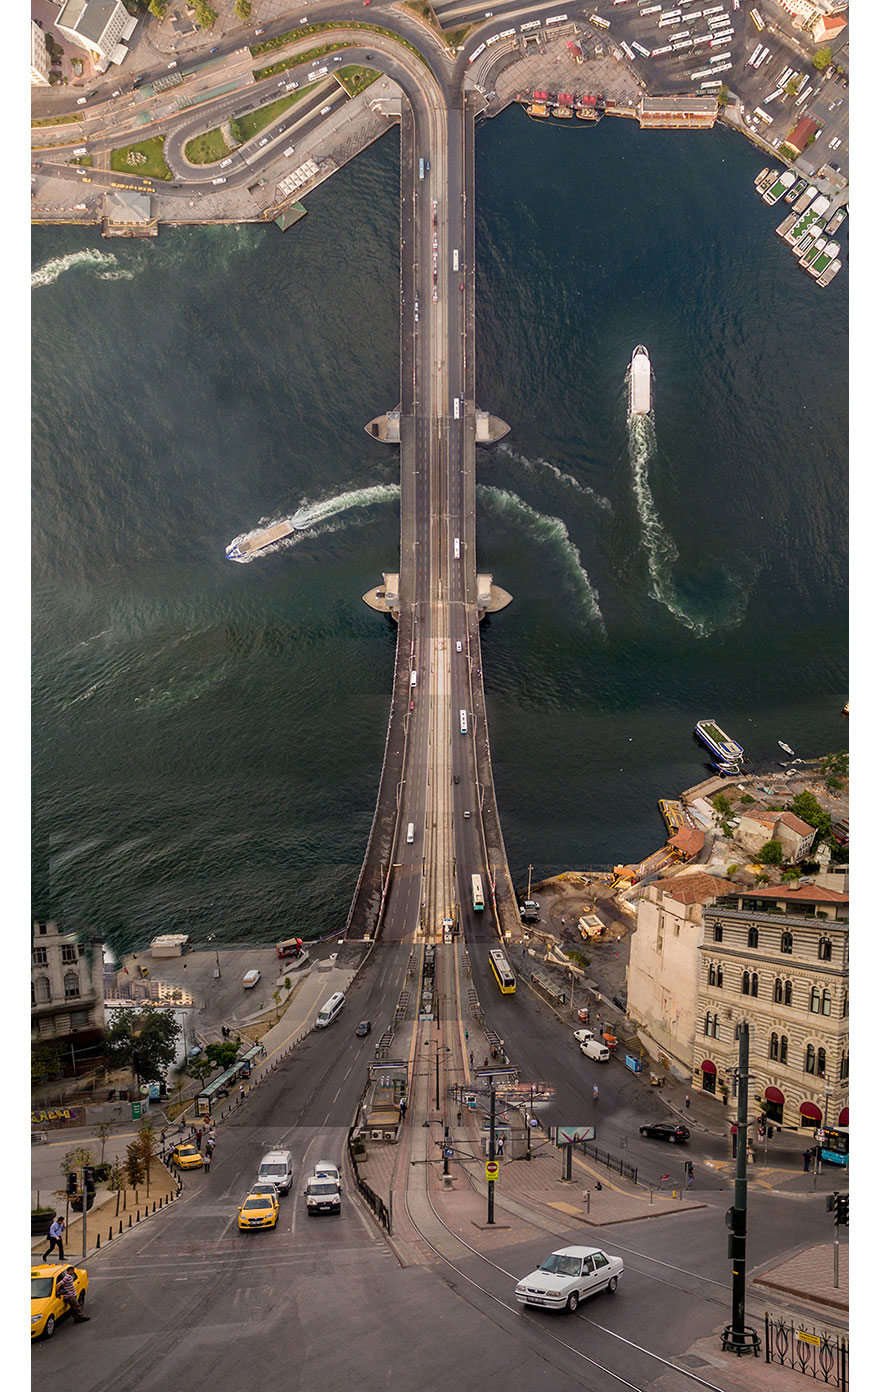 inception-istanbul-surreal-city-landscape-flatland-aydin-buyuktas-10